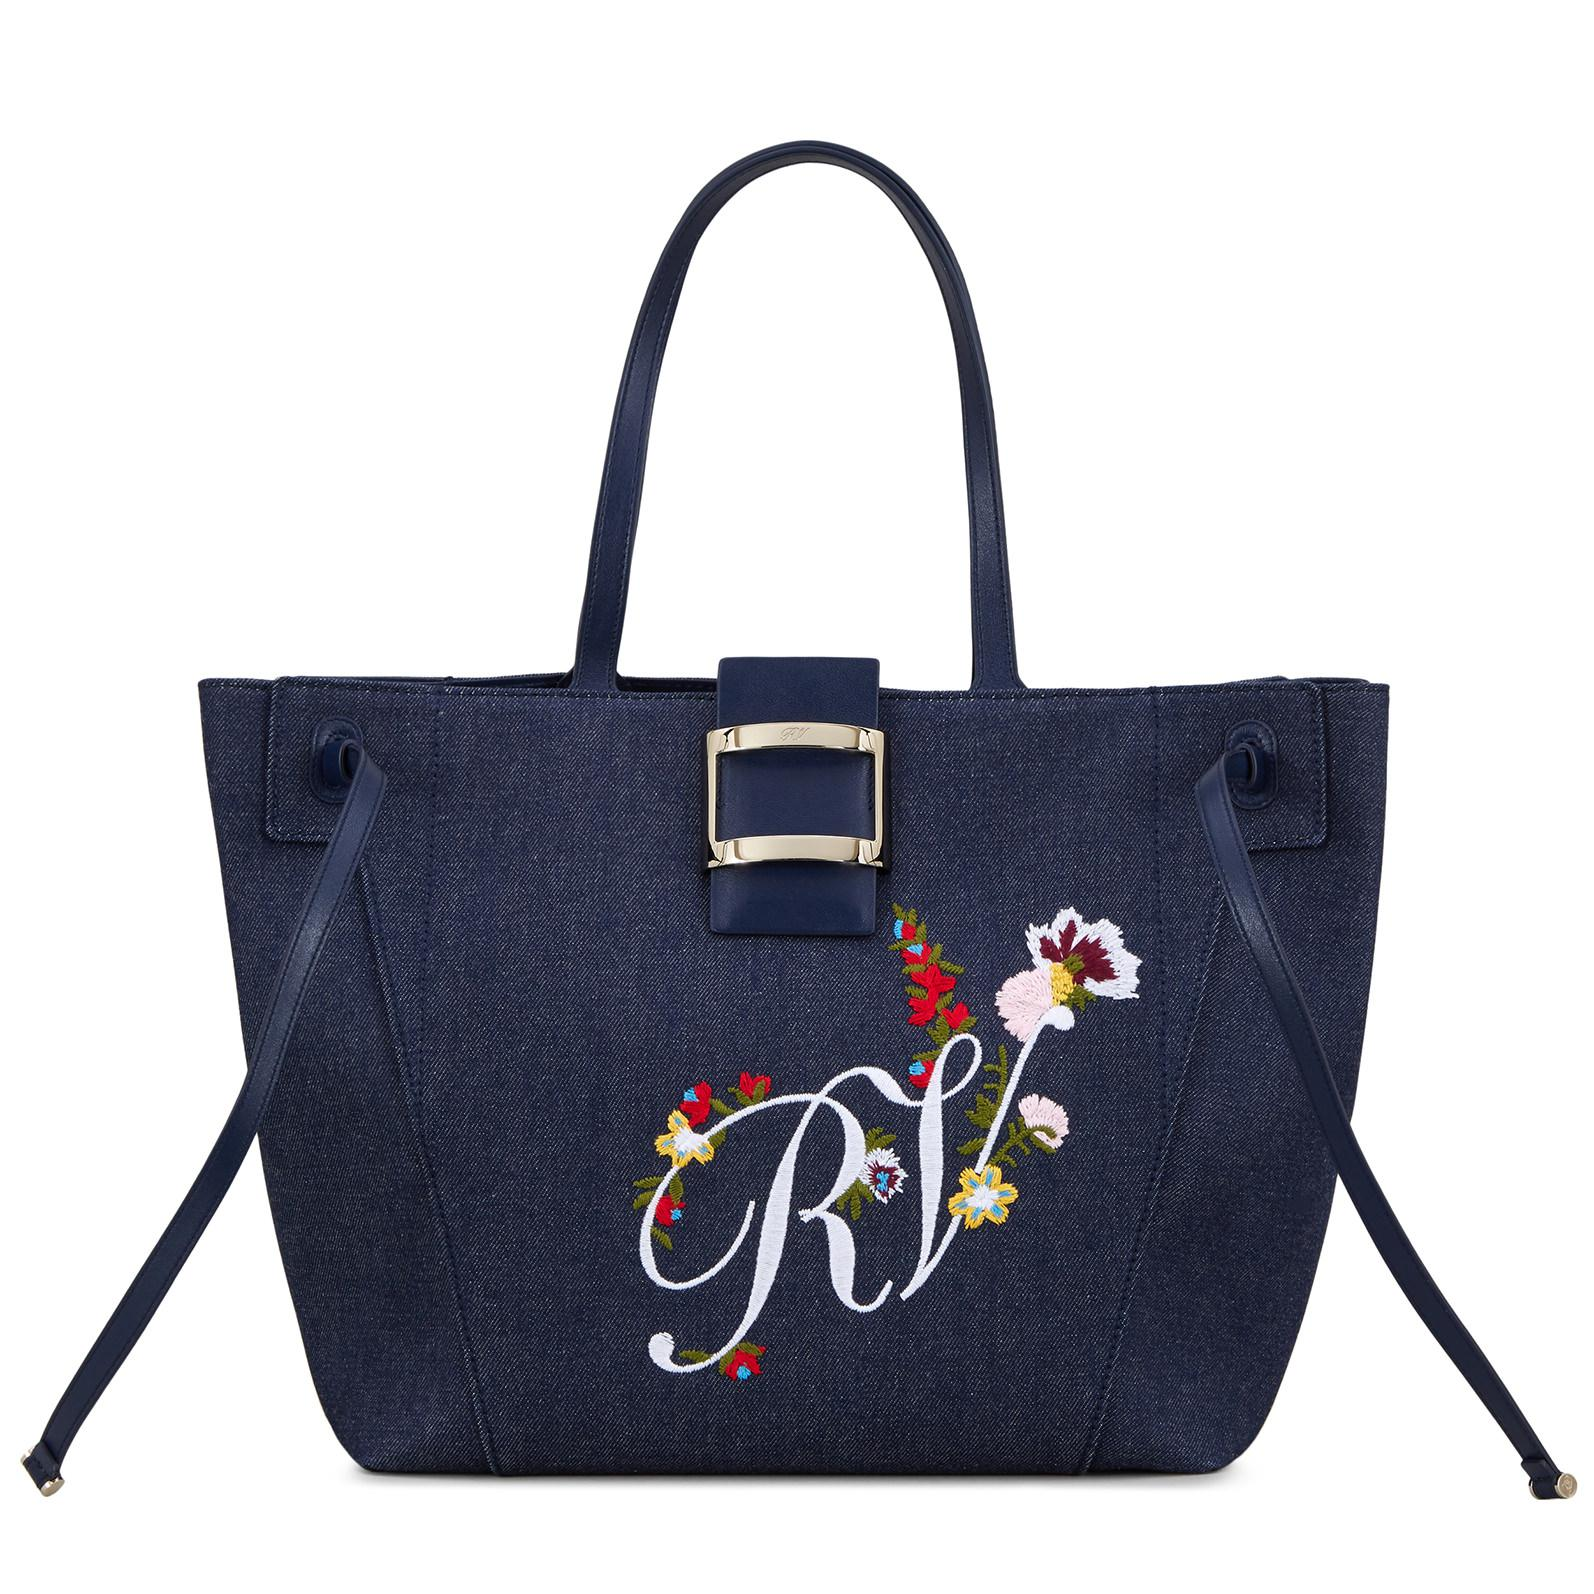 b0ec0ac73e Lyst - Roger Vivier Viv  Blooming Rv Tote Large in Blue